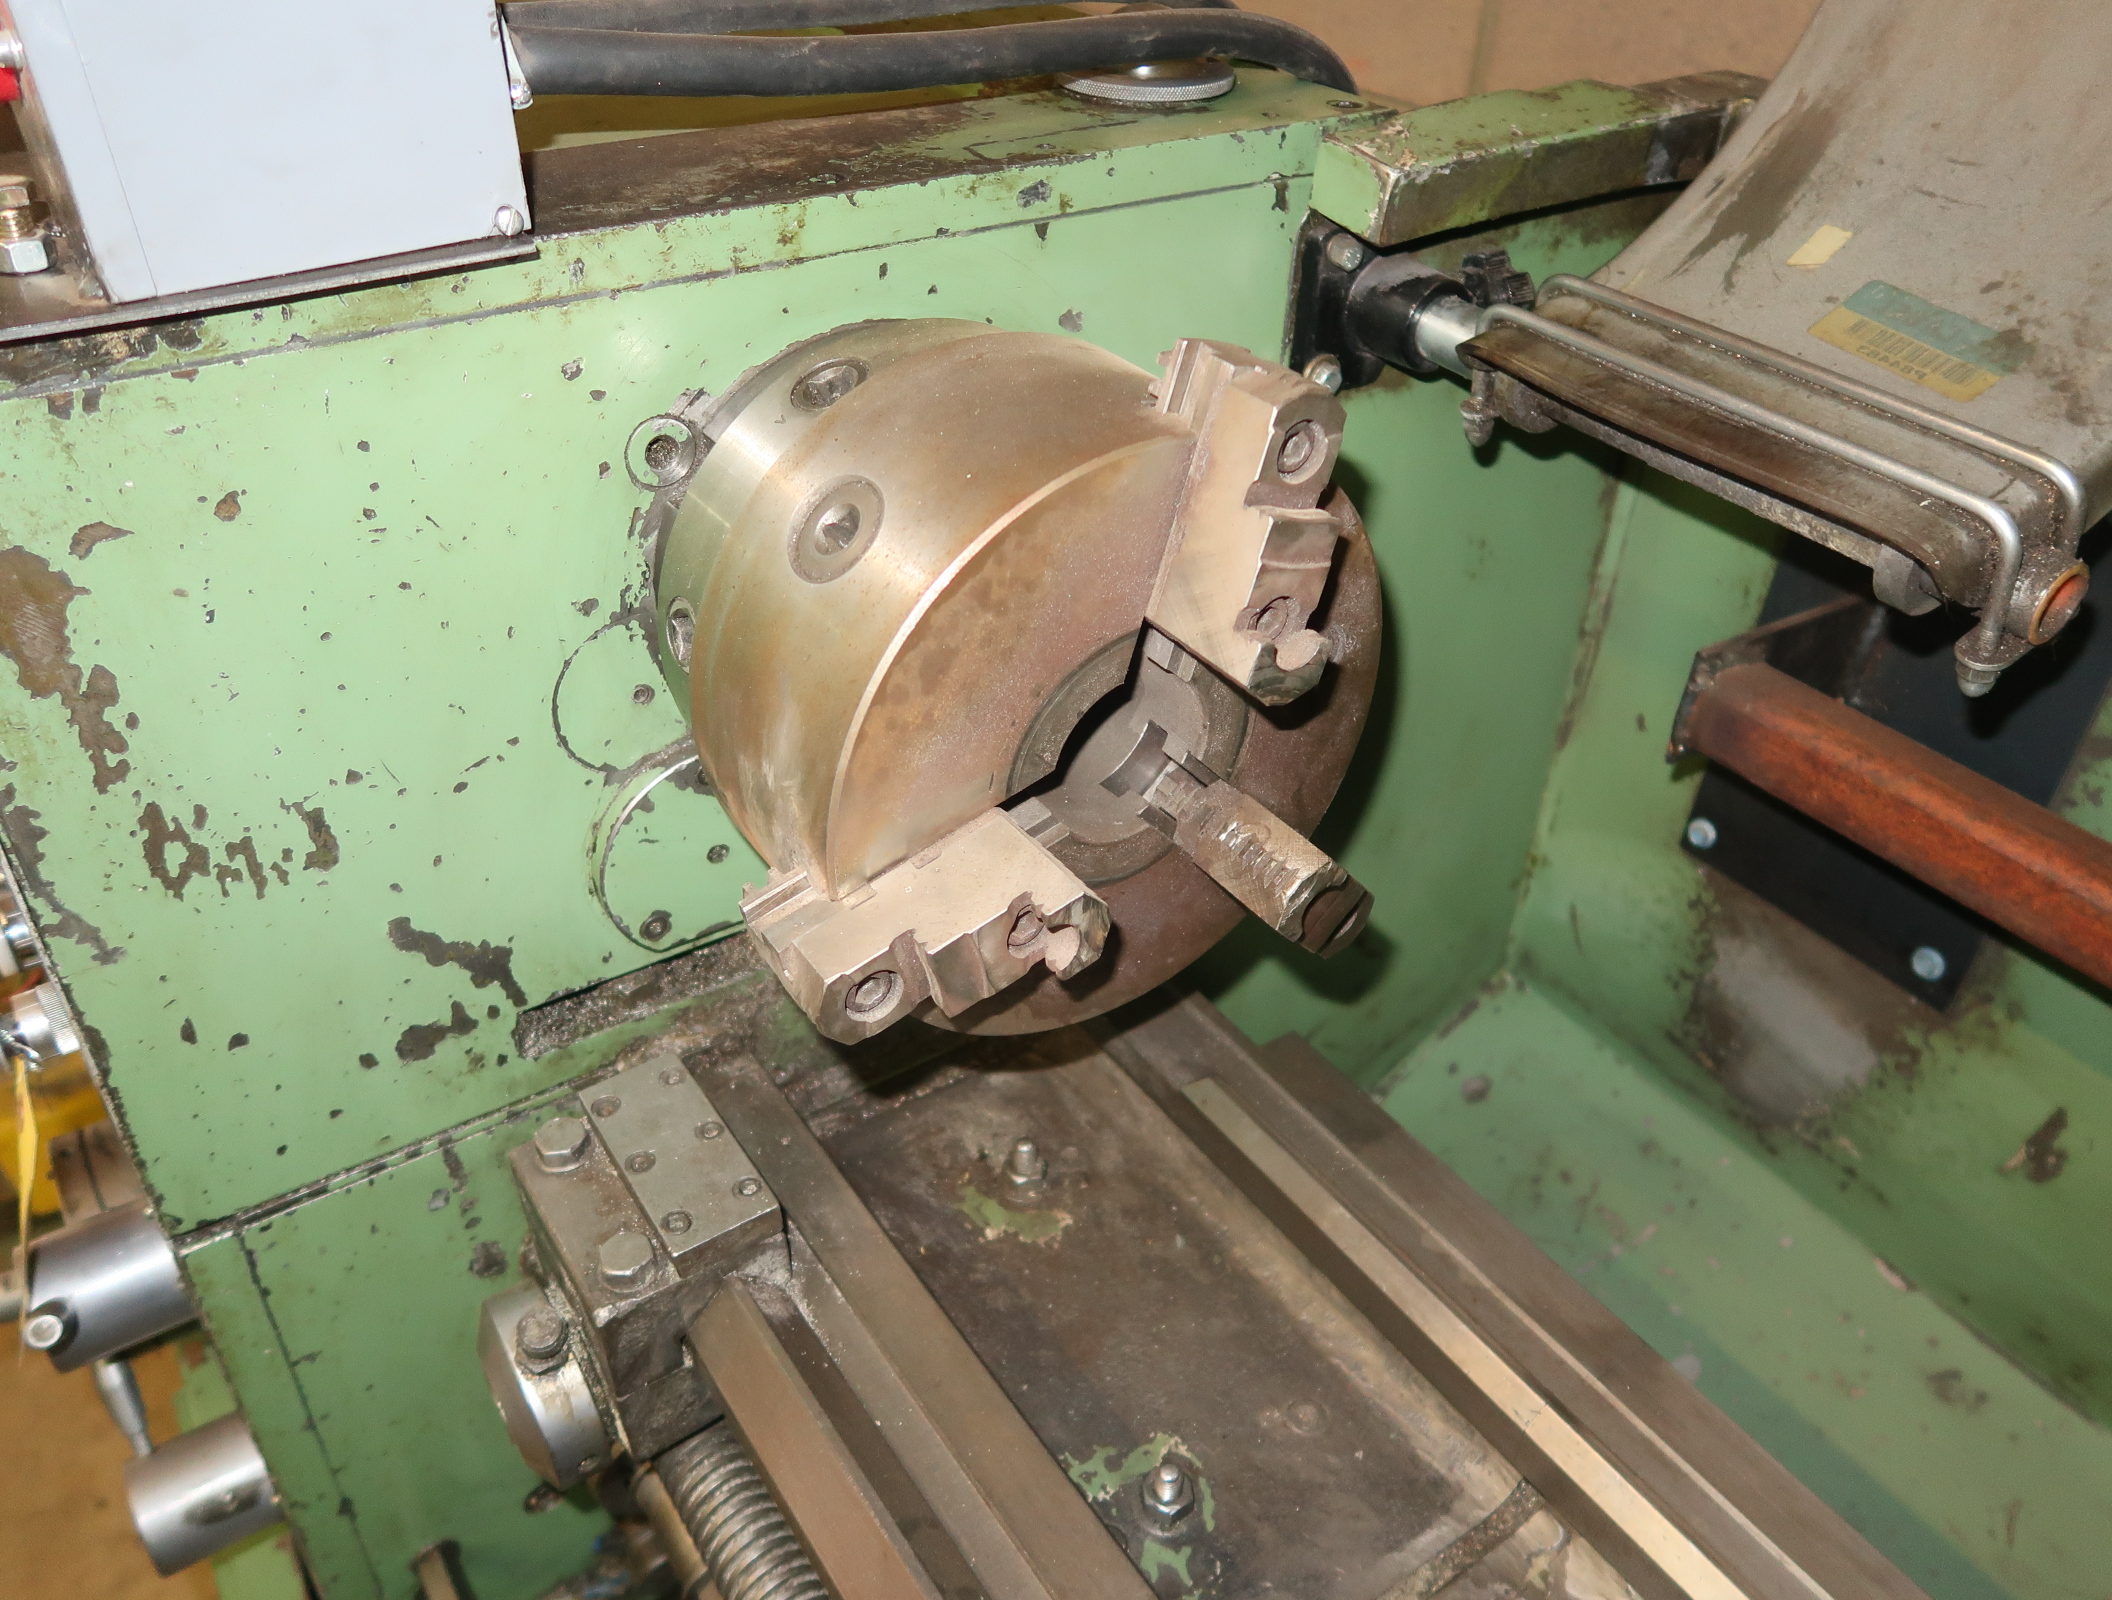 NARDINI-ND 1560E GAP BED ENGINE LATHE W/3-JAW CHUCK, QUICK CHANGE TOOLPOST W/3-HOLDERS, 5C COLLET - Image 3 of 6